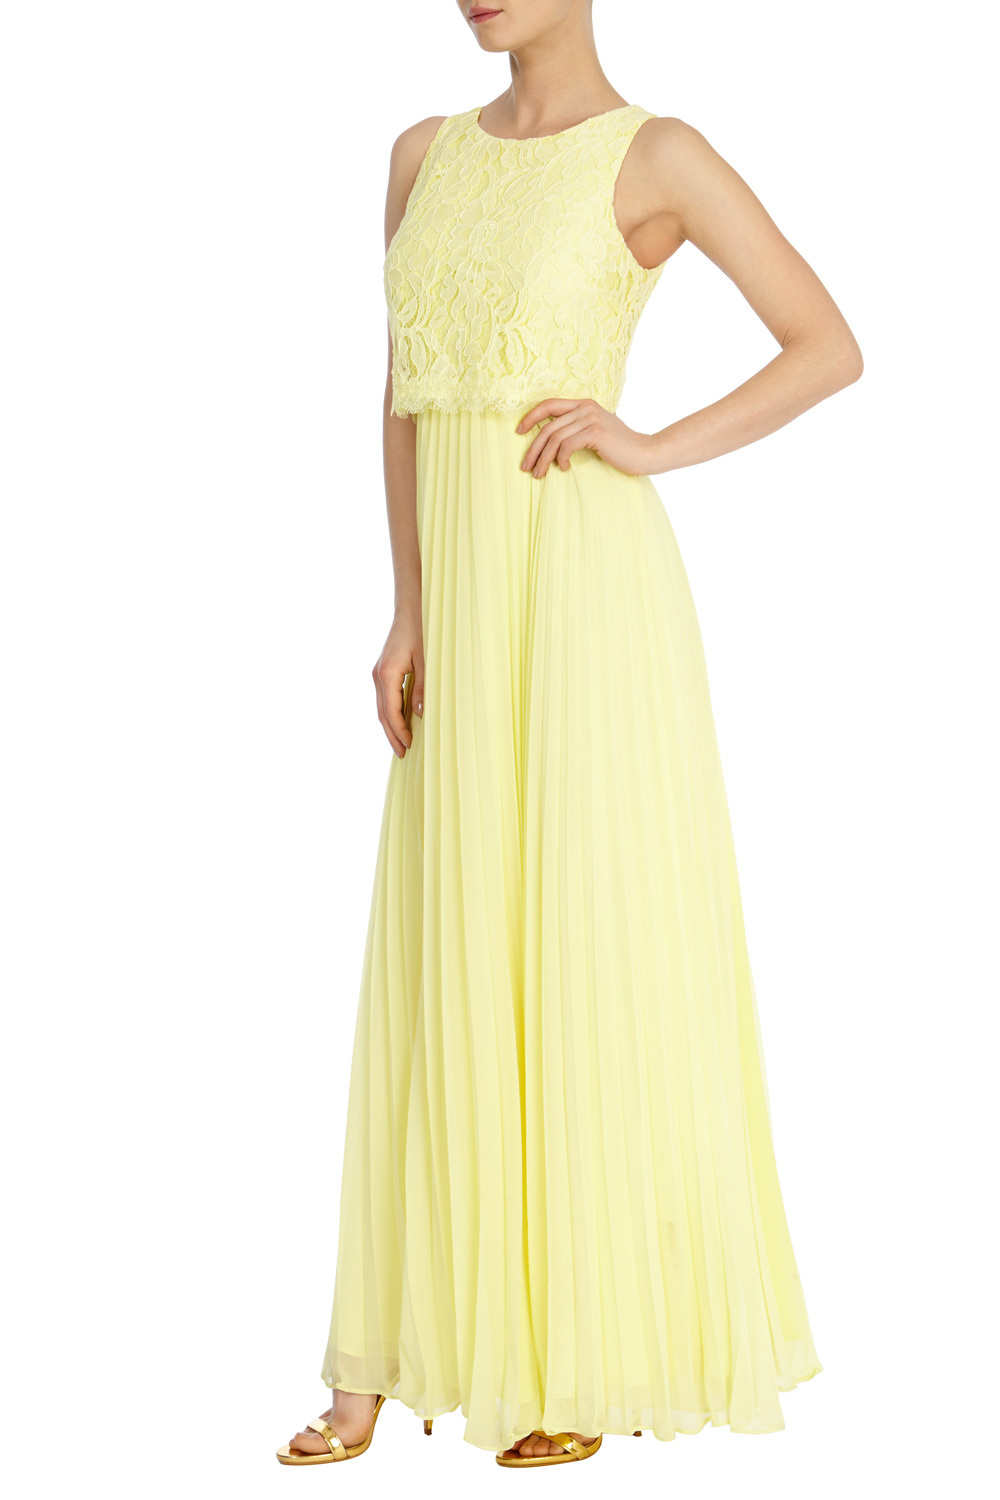 Delia Lace Maxi - style: ballgown; pattern: plain; sleeve style: sleeveless; predominant colour: primrose yellow; length: floor length; fit: soft a-line; fibres: polyester/polyamide - 100%; occasions: occasion; neckline: crew; sleeve length: sleeveless; texture group: lace; pattern type: fabric; embellishment: lace; season: s/s 2016; wardrobe: event